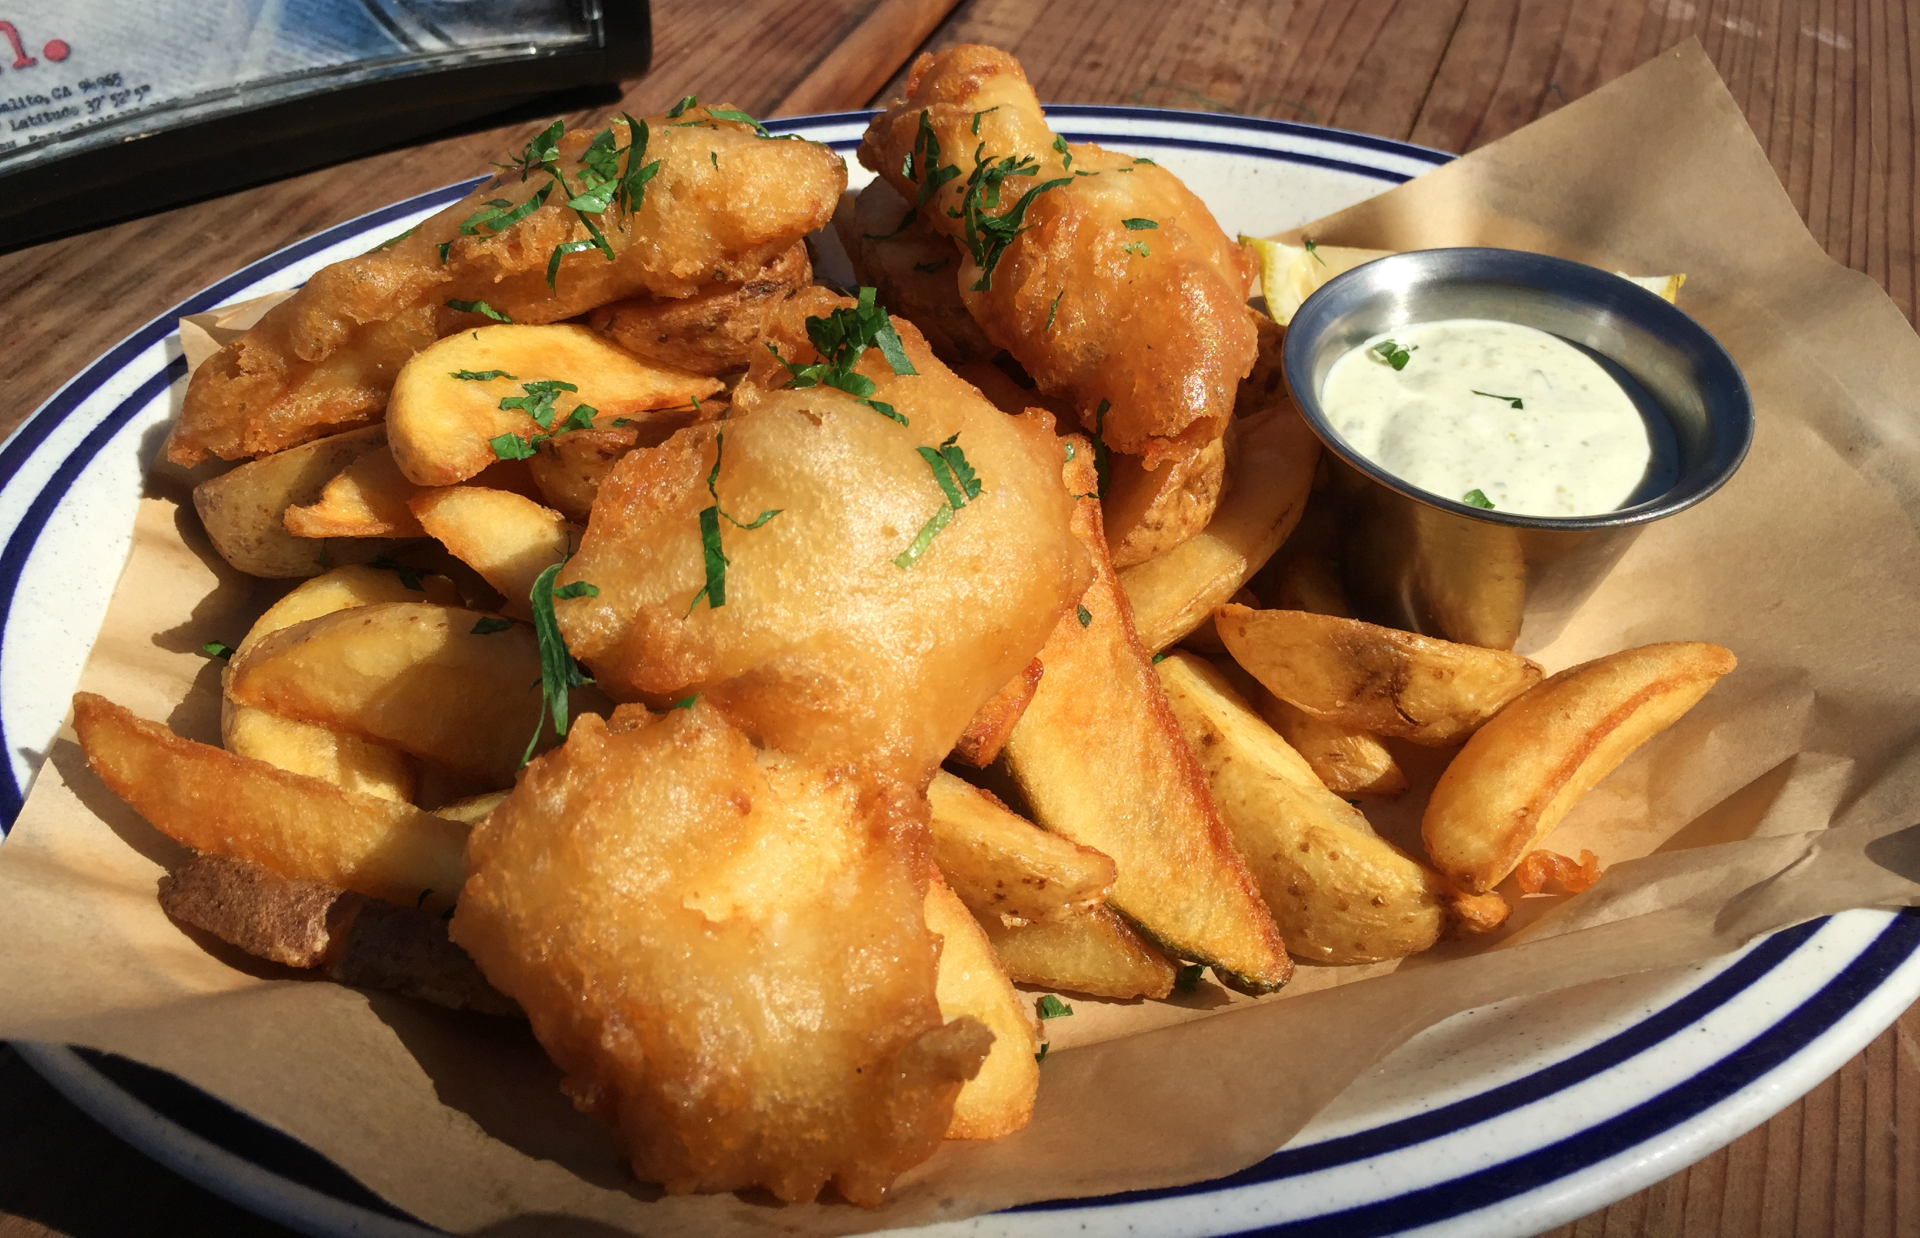 The fish and chips at Fish featured local cod.